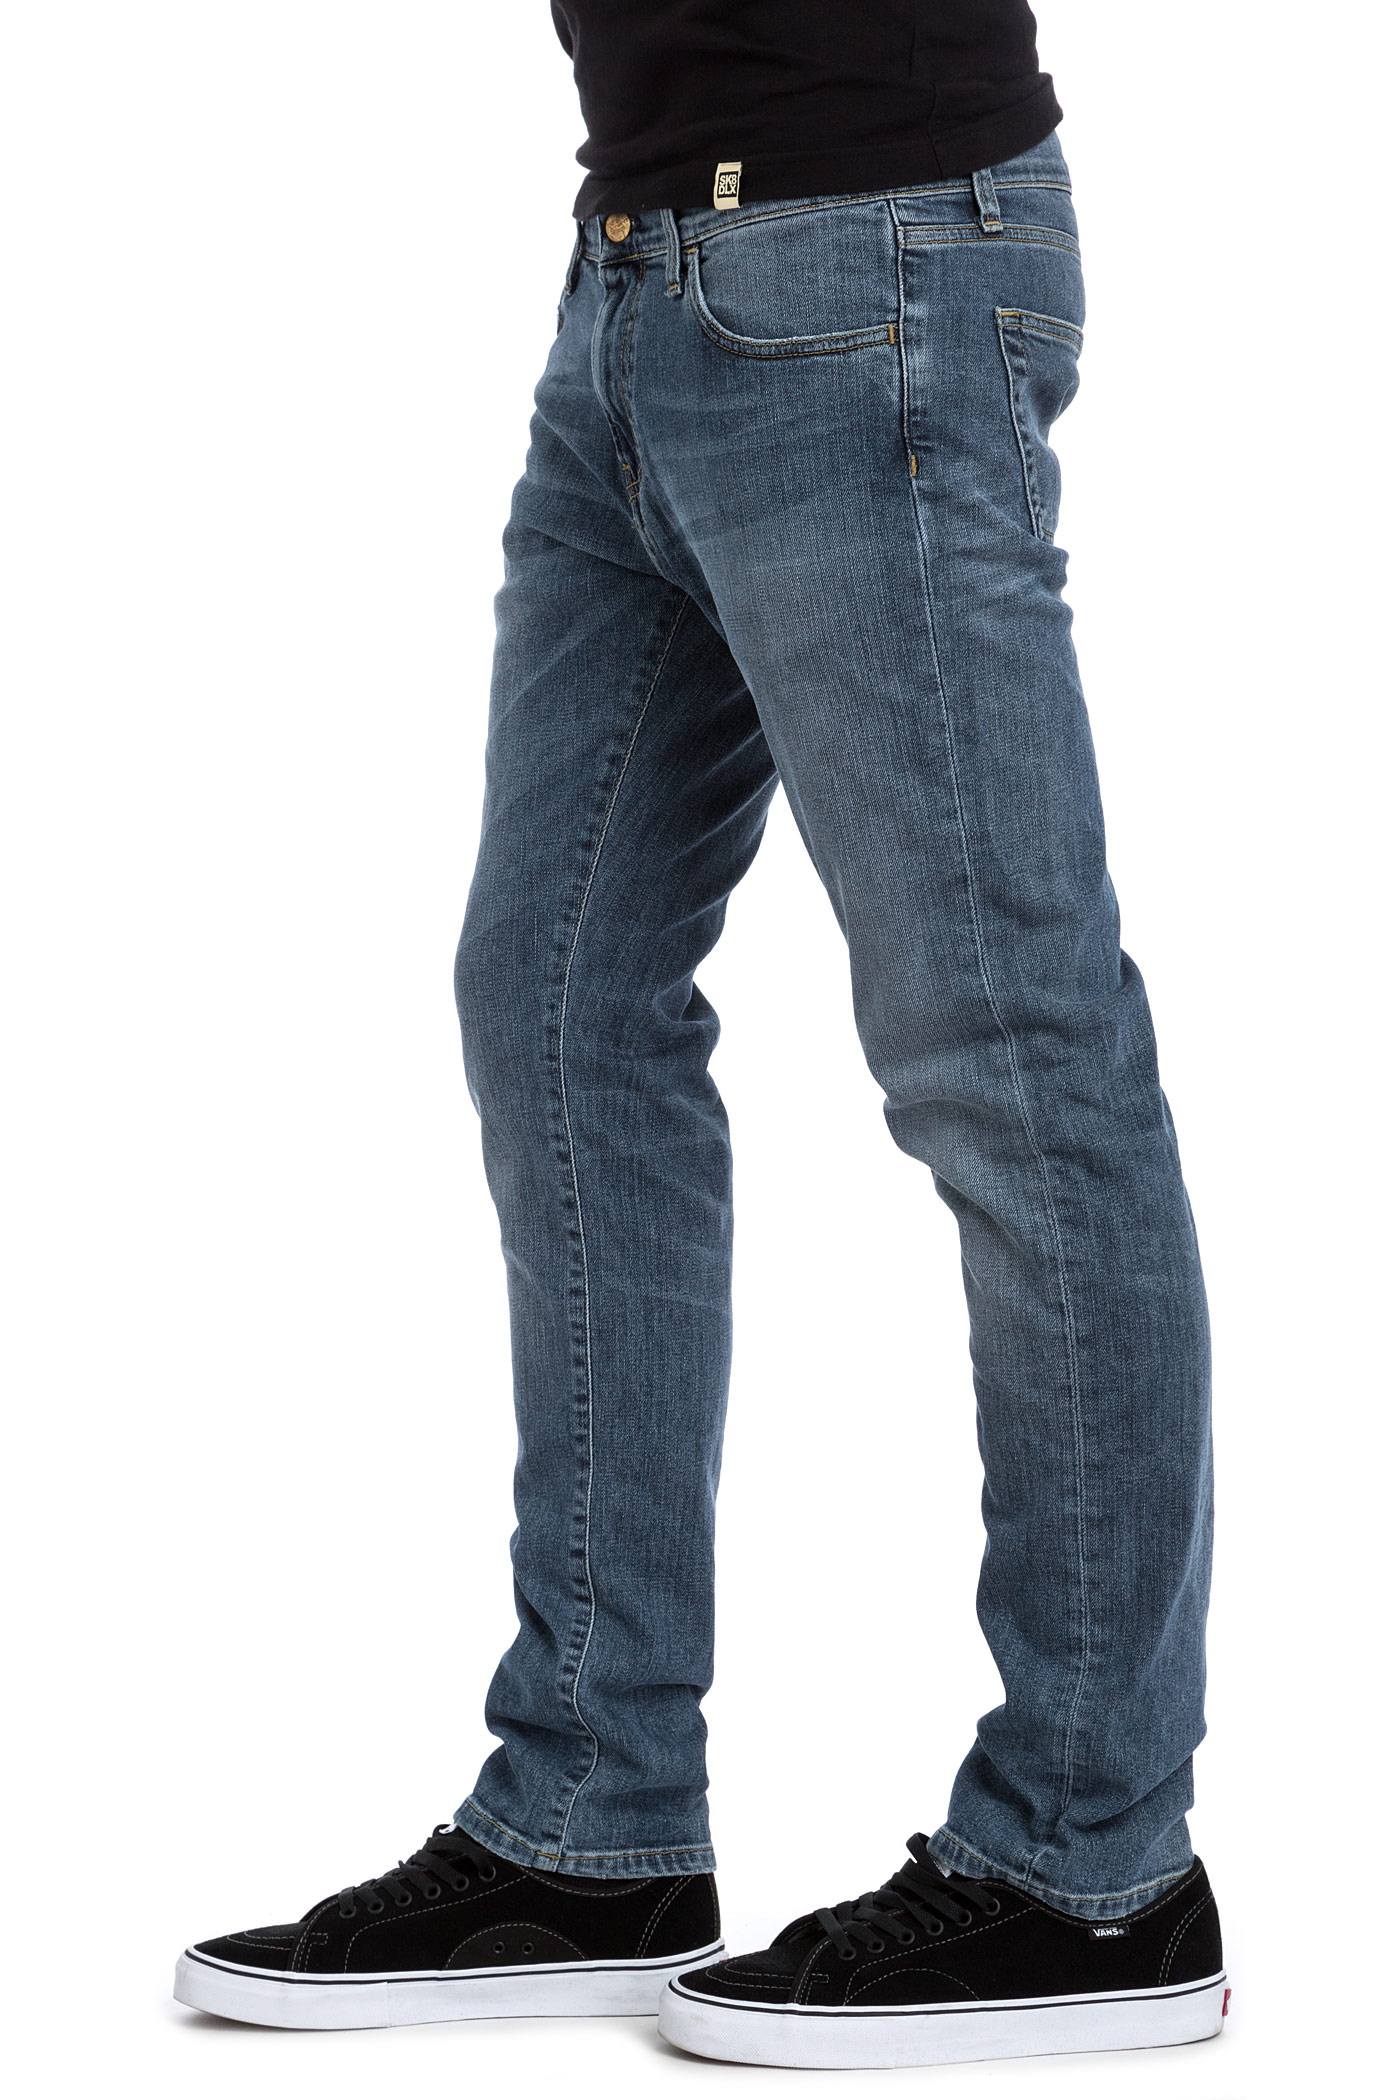 Carhartt WIP Rebel Pant Spicer Jeans (blue rope washed ...